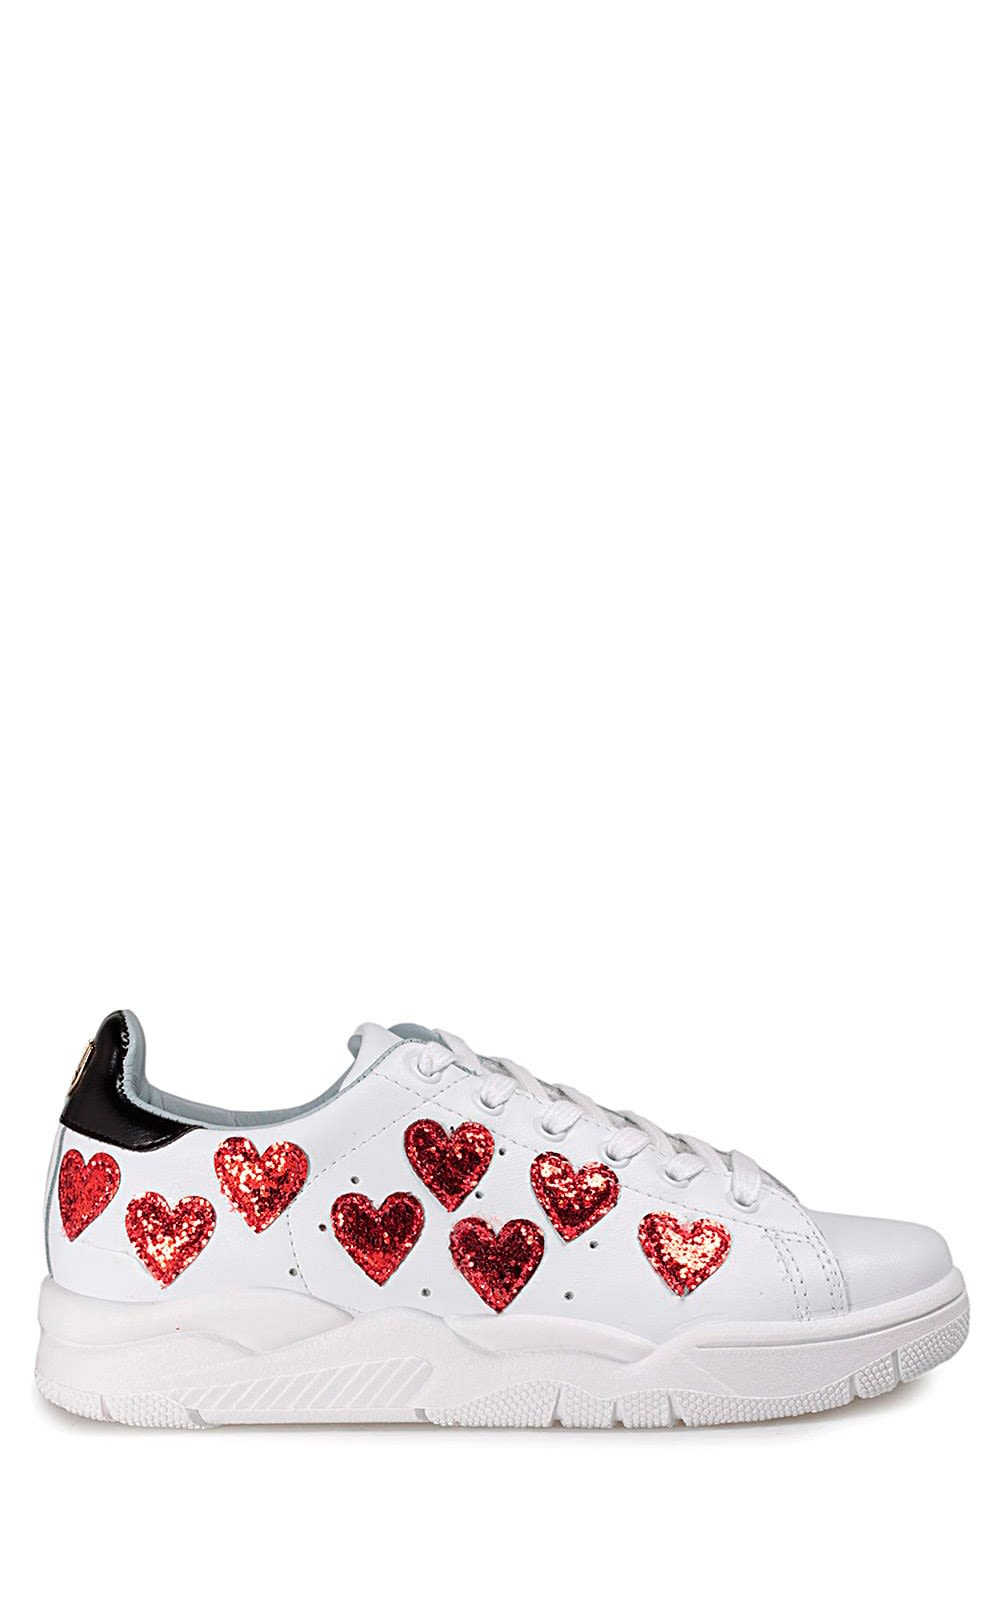 Roger glittered-hearts leather sneakers Chiara Ferragni i6Zyl0